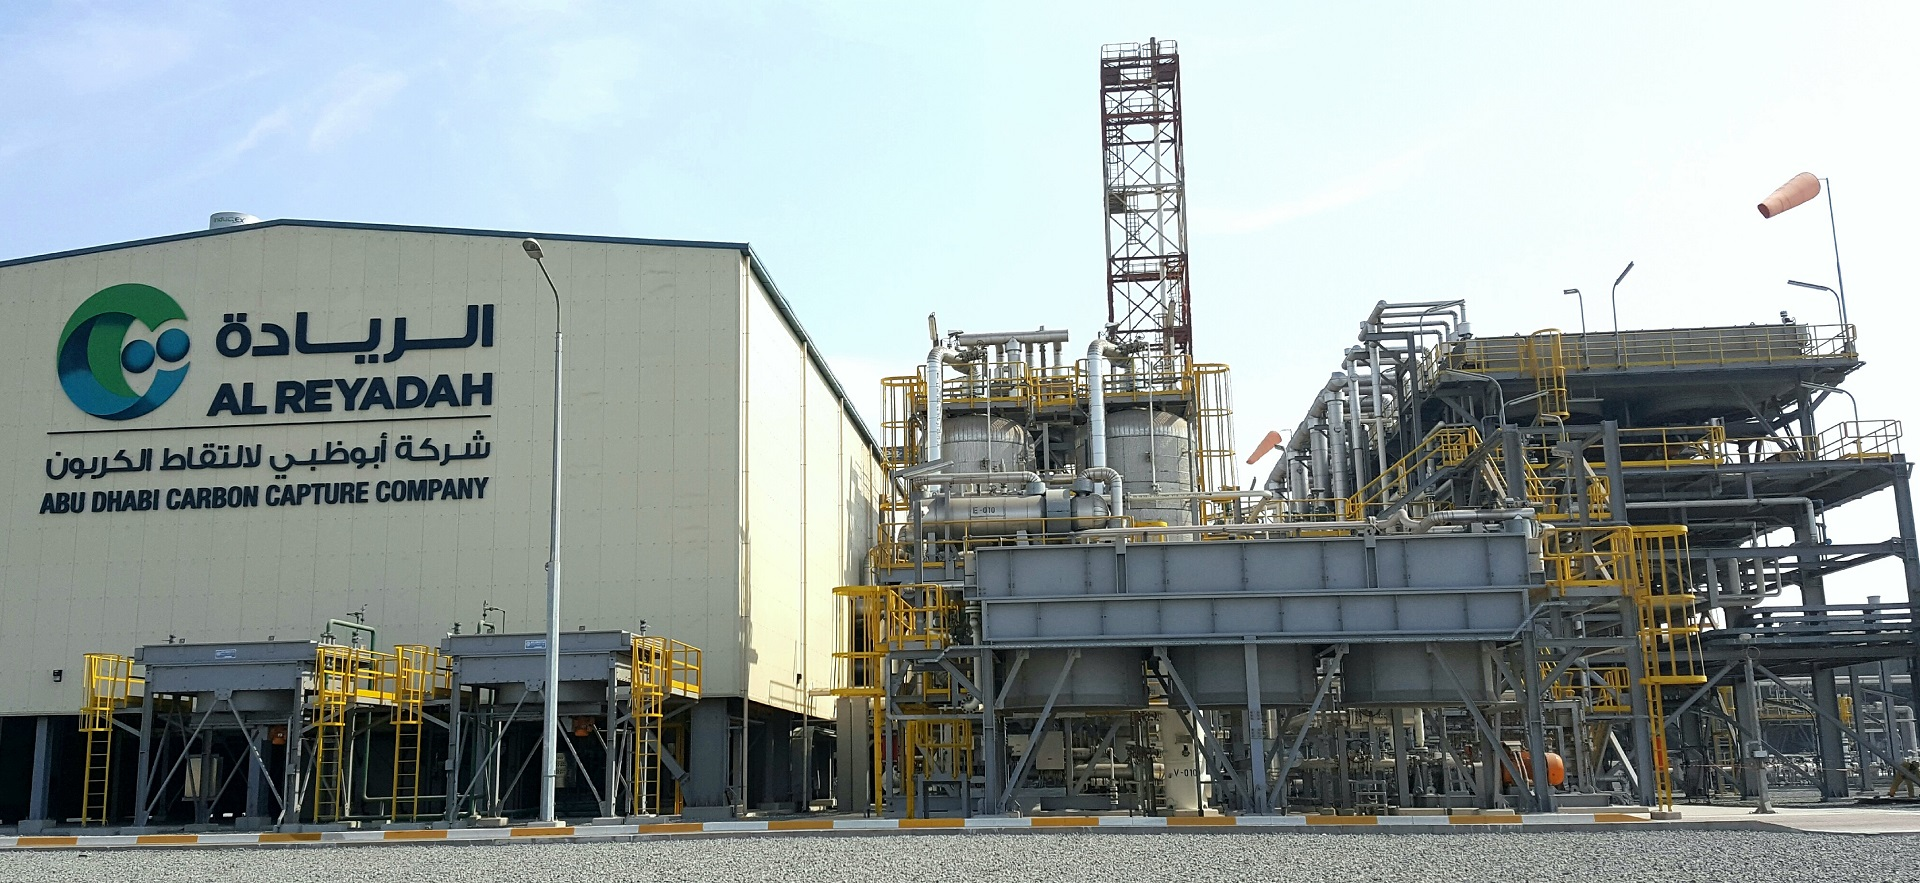 World's first CCUS project in the steel industry now operational at the Al Reyadah site, United Arab Emirates